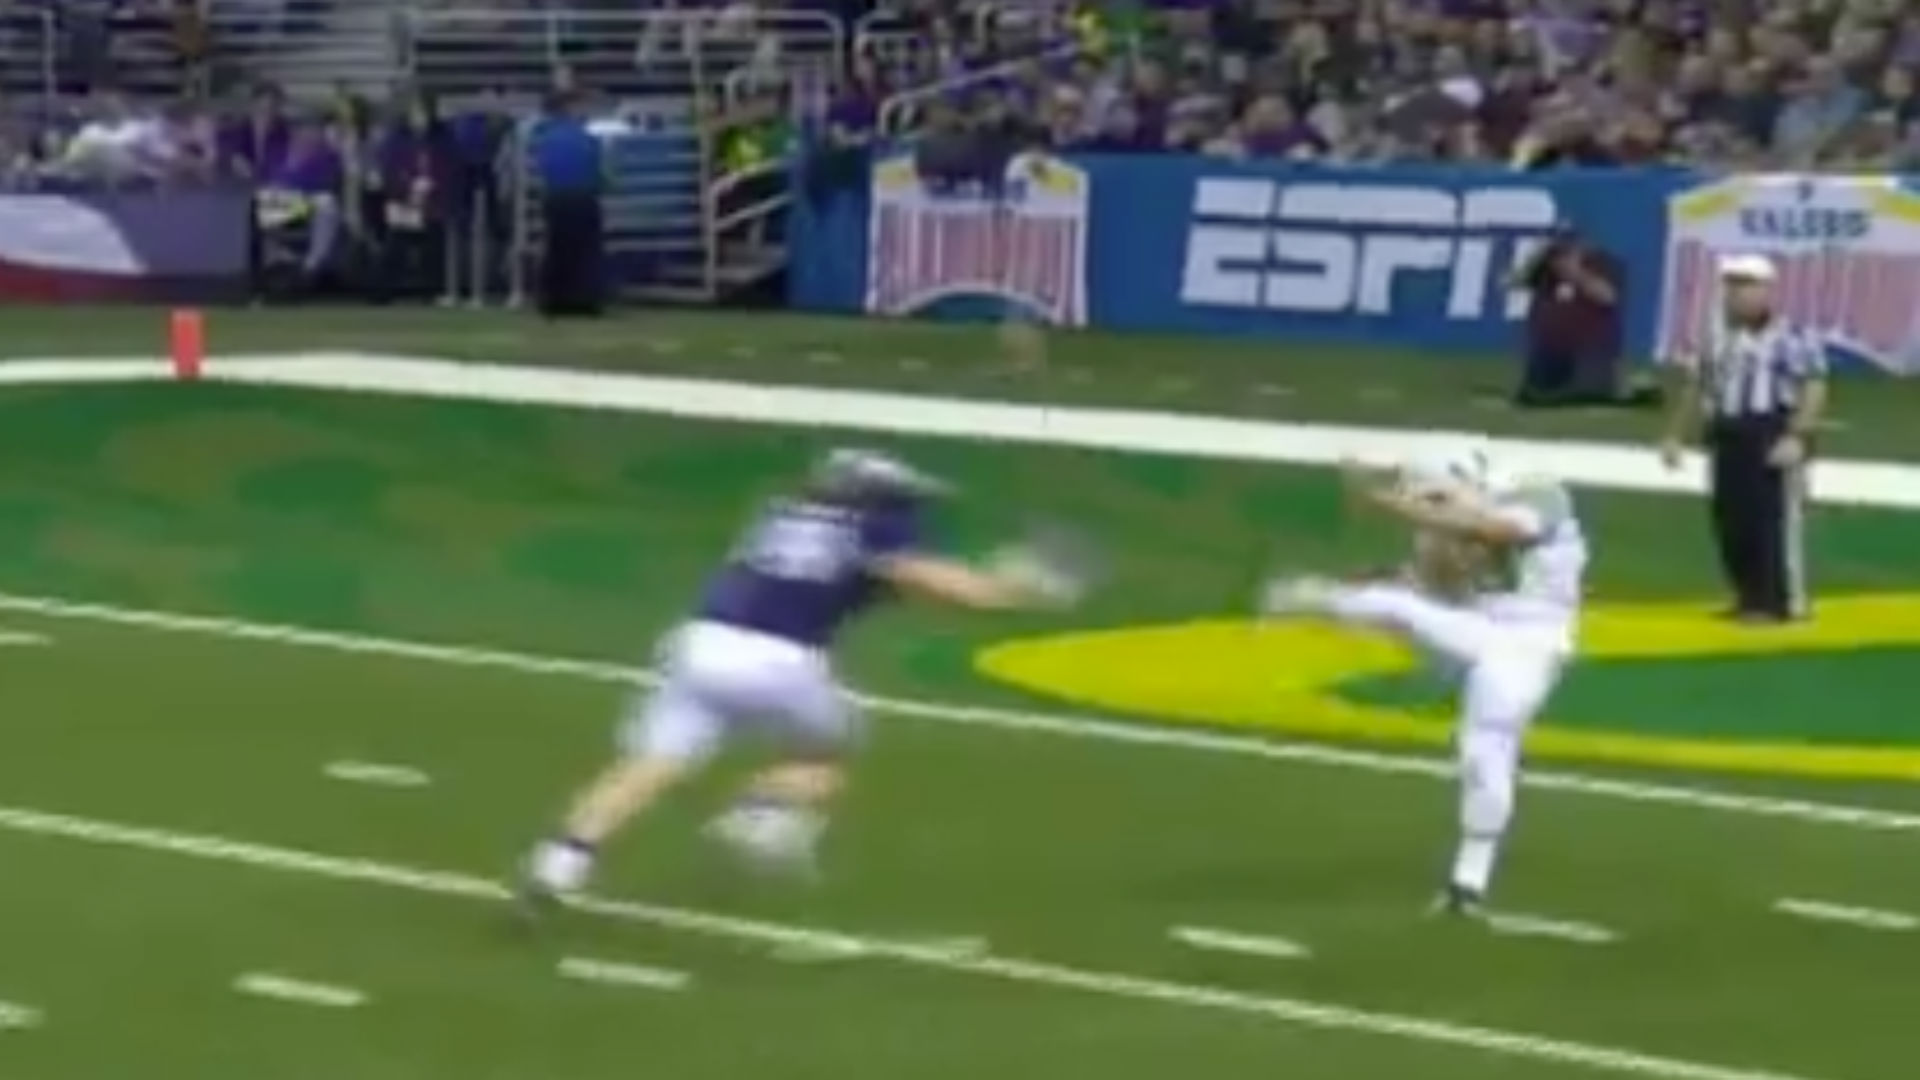 oregon-tcu-blocked-punt-ftr-010216.jpg